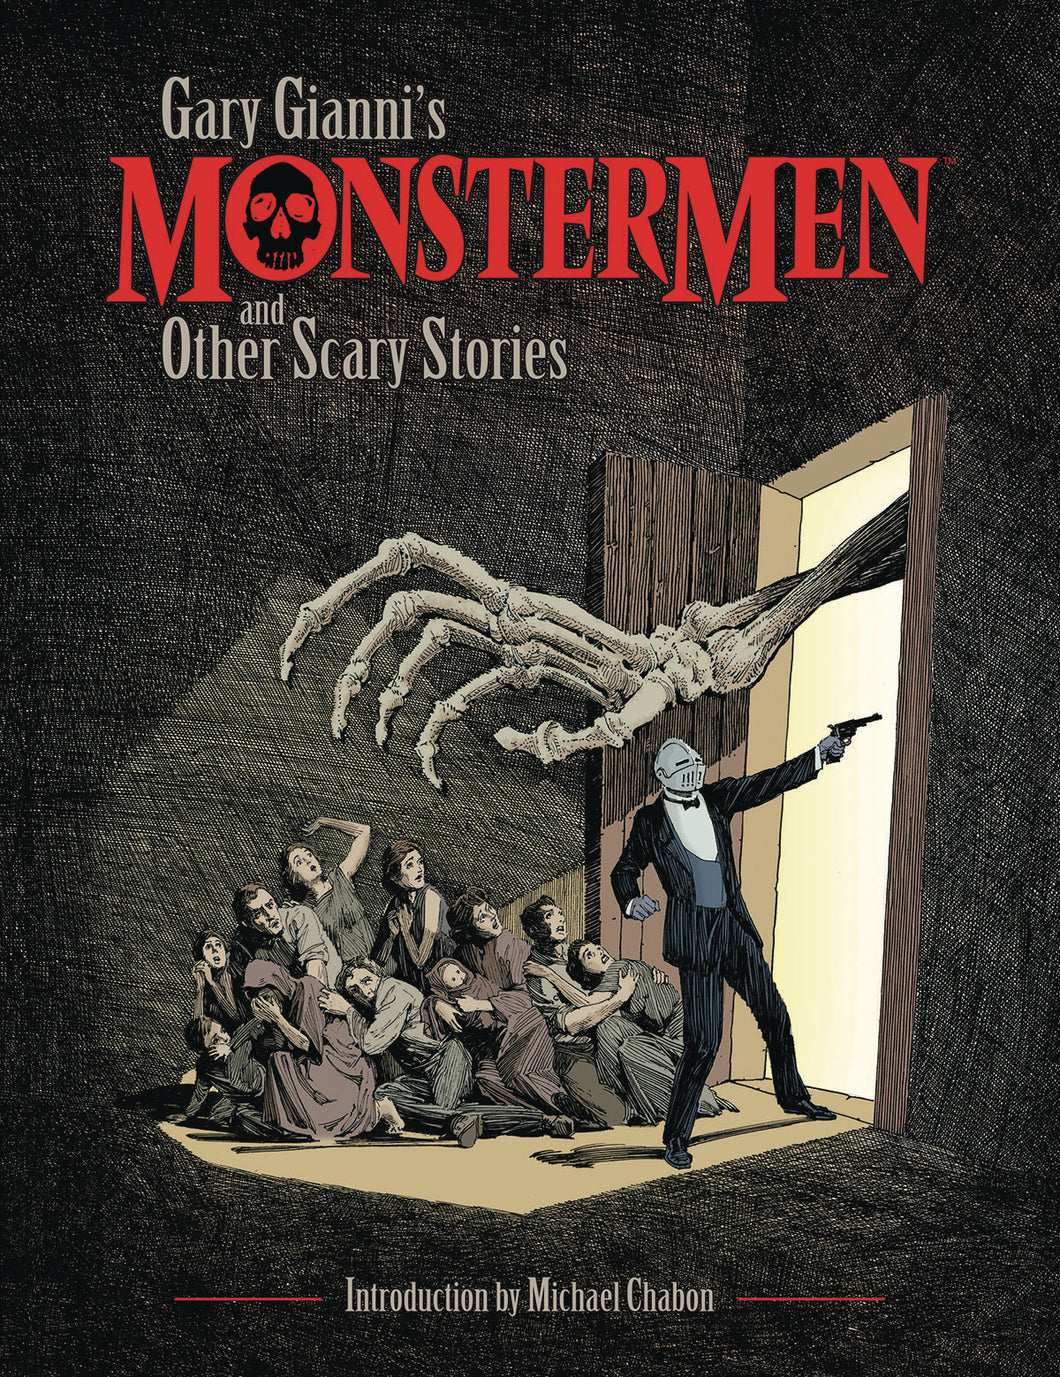 GARY GIANNI MONSTERMEN & OTHER SCARY STORIES TP (C: 0-1-2)